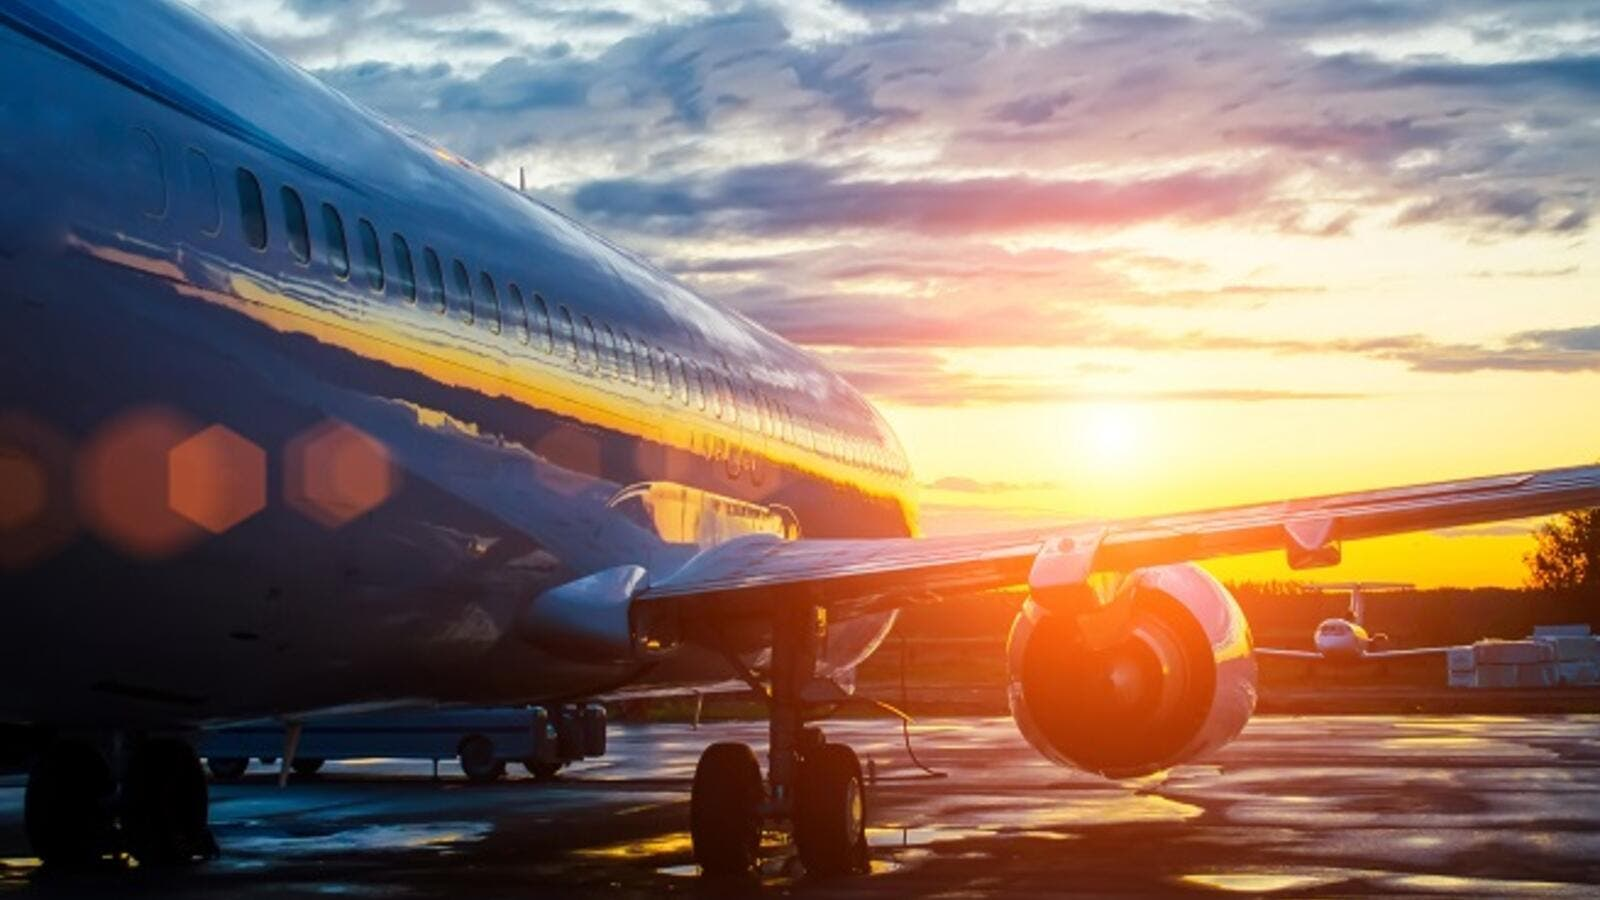 Boeing projects the Middle East will require $745 billion in aviation services through 2037 to keep pace with growing passenger and freight traffic in the region. (Shutterstock)